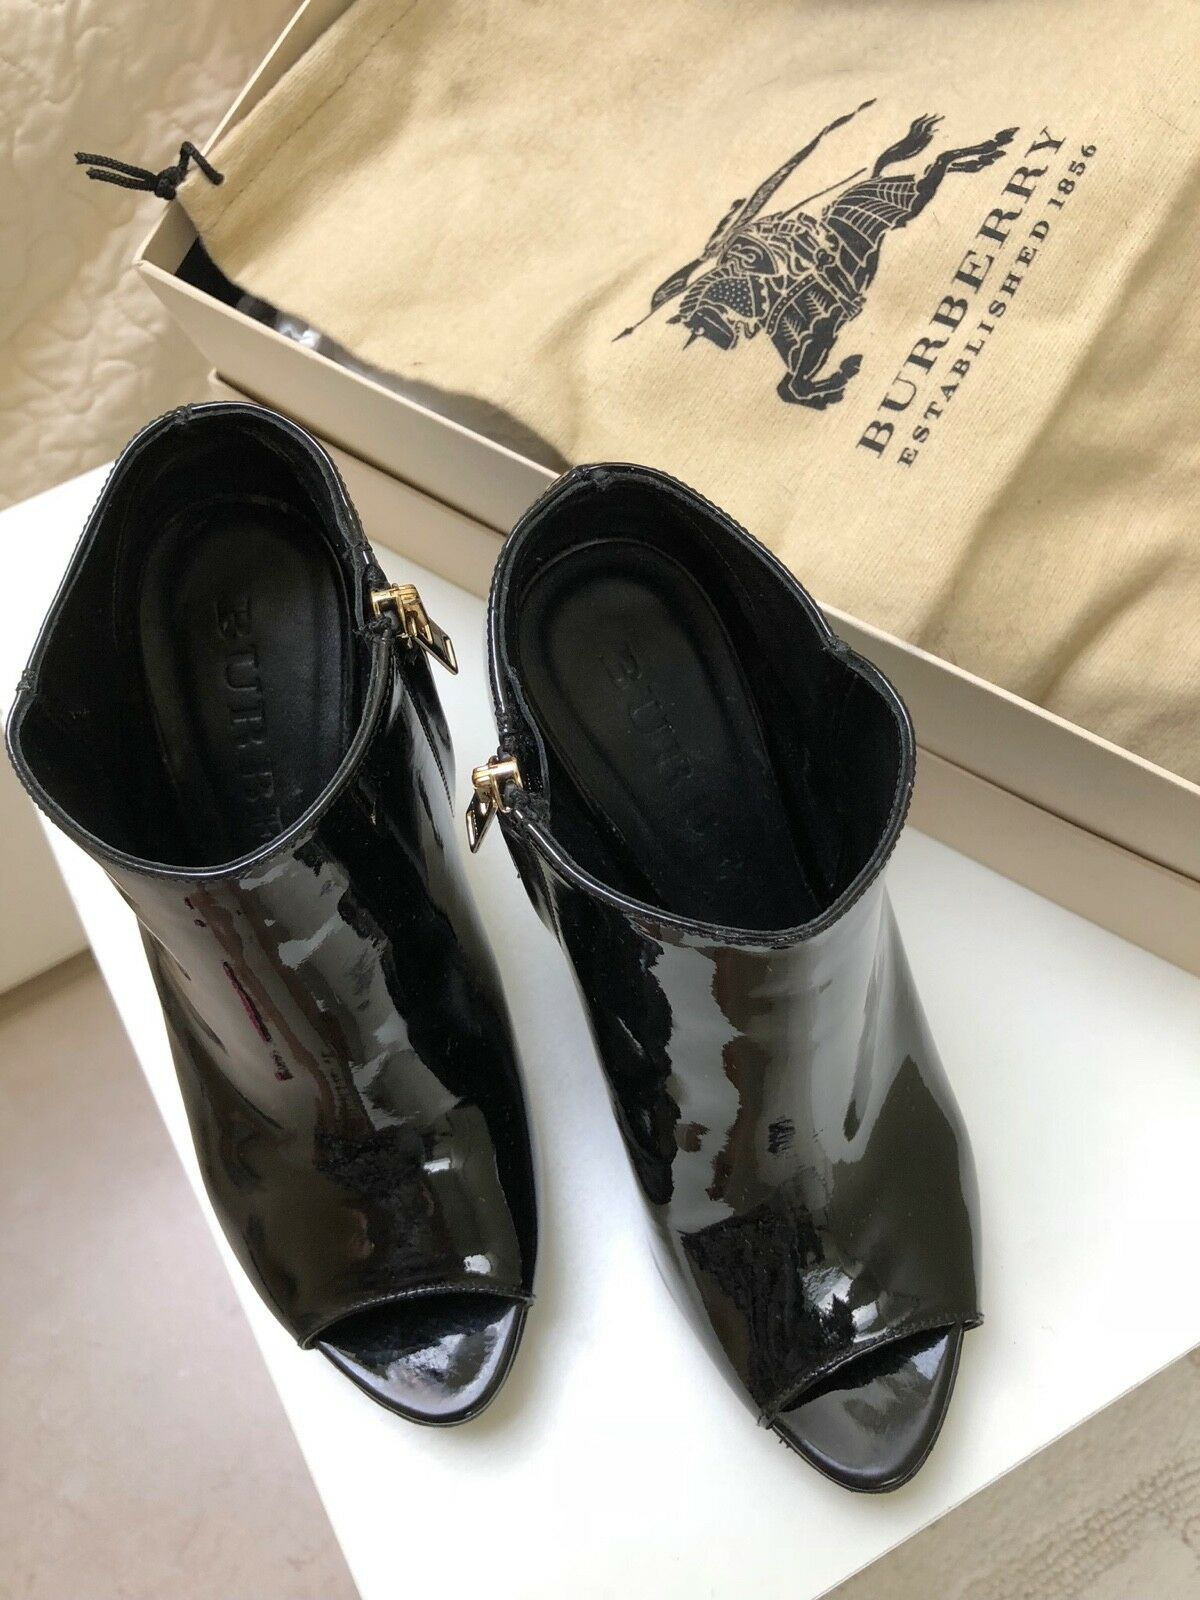 BURBERRY ANKLE  BOOT PEEP TOE BLACK SHOES SIZE 36